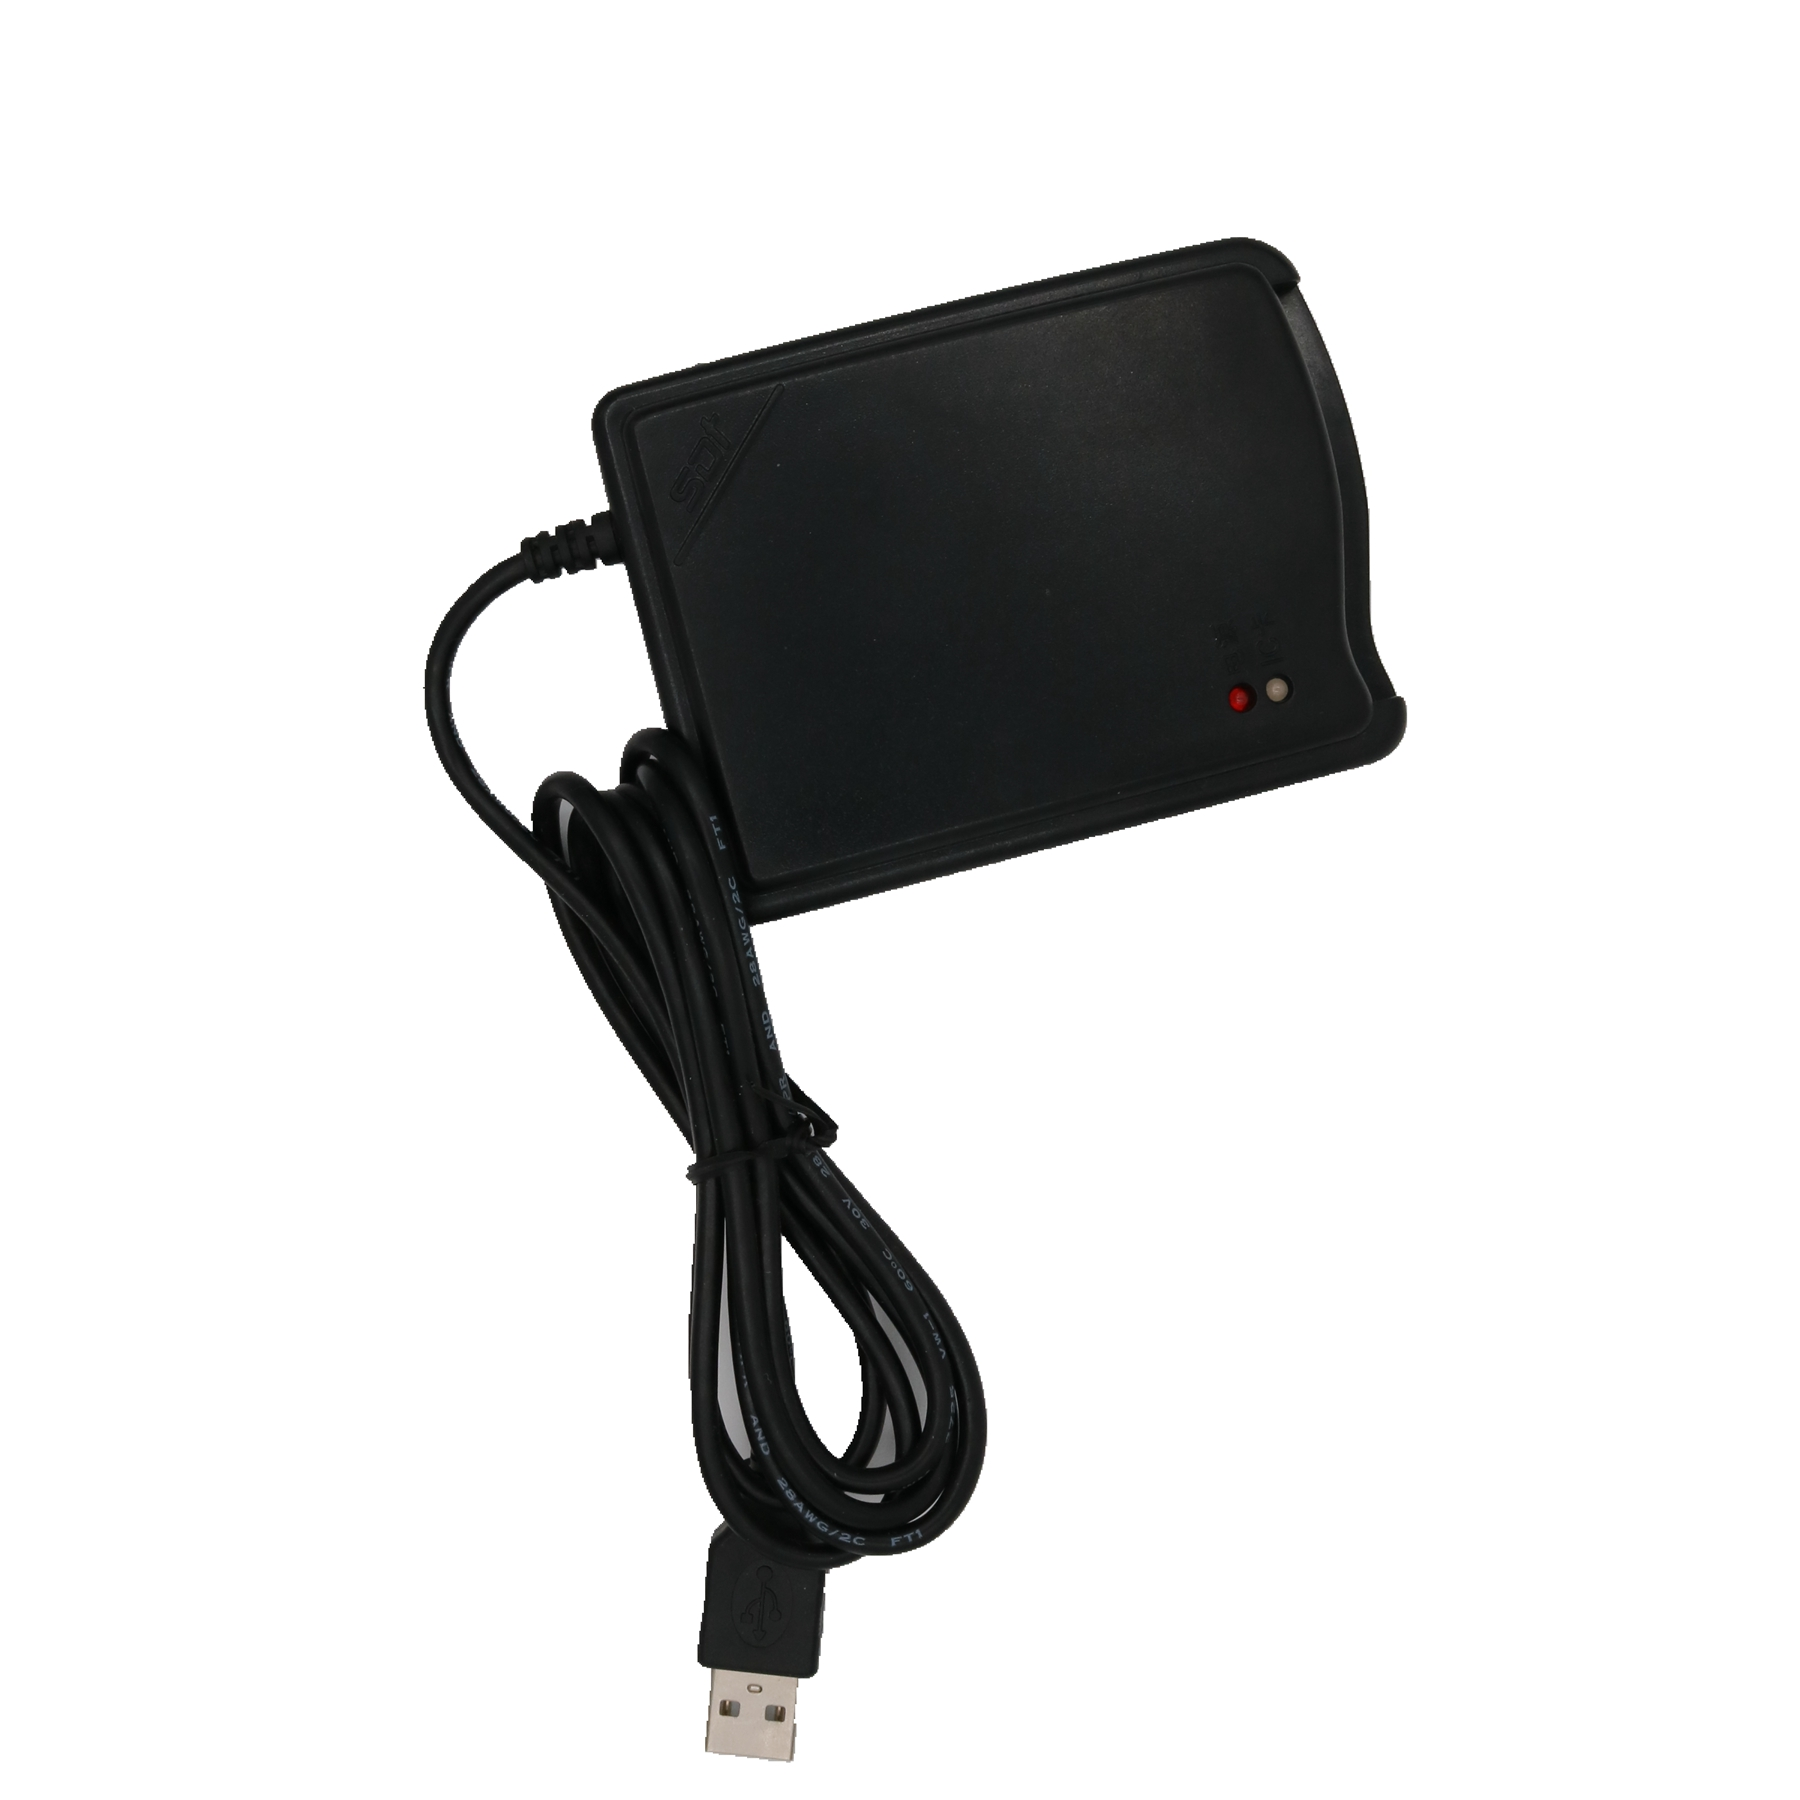 USB RFID/IC 13.56MHZ Read write non-driver M1 card reader / IC card UID card reader write + 10UID ID changeable keyfob ic usb reader 13 56mhz usb ic reader for user enrollment mf m1 card enroller page 2